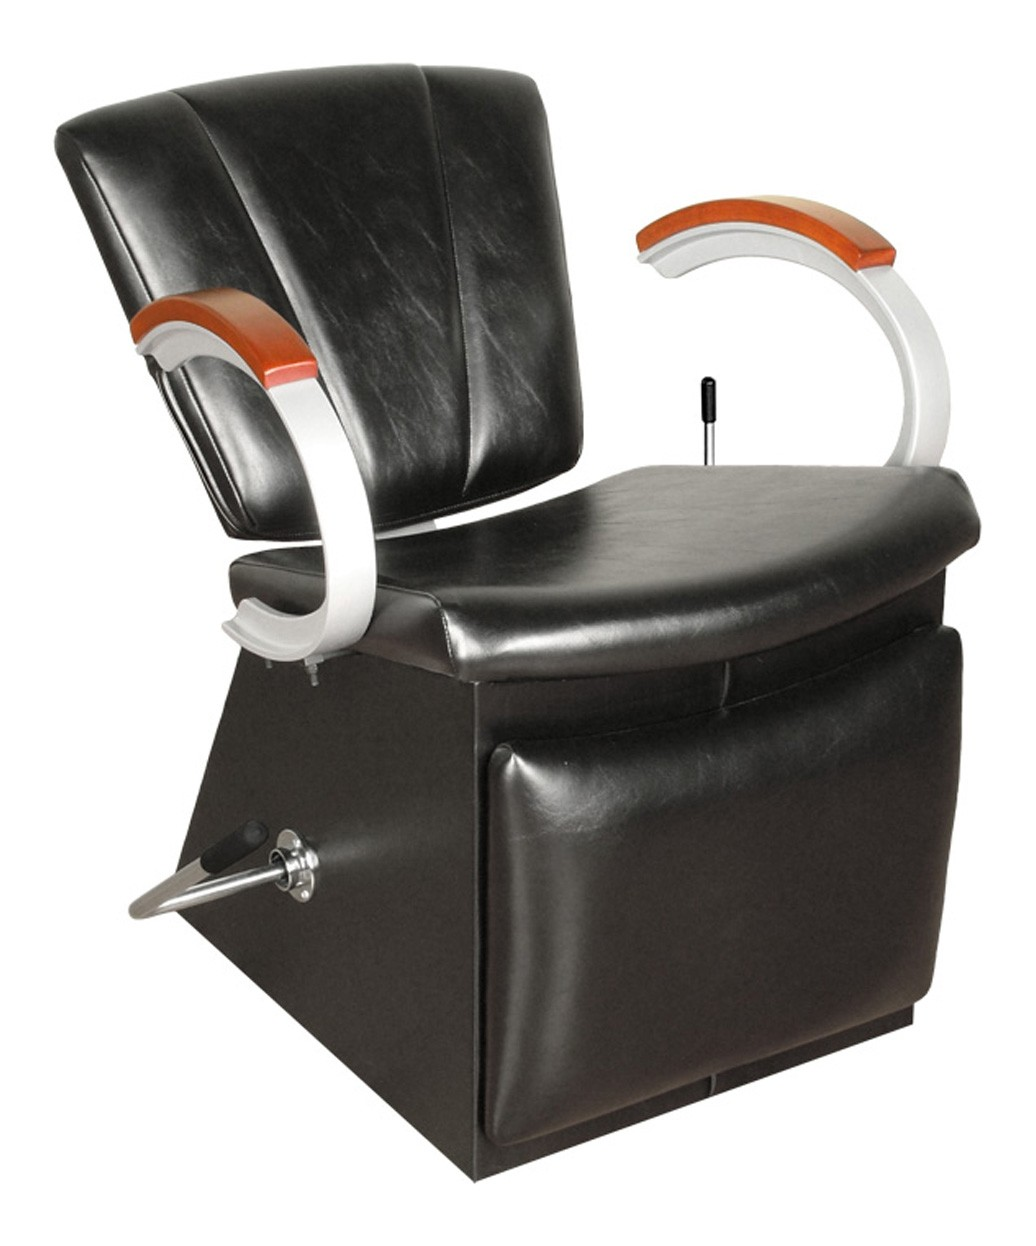 Collins 9751 Vanelle Lever-Control Shampoo with Kick Out Leg Rest